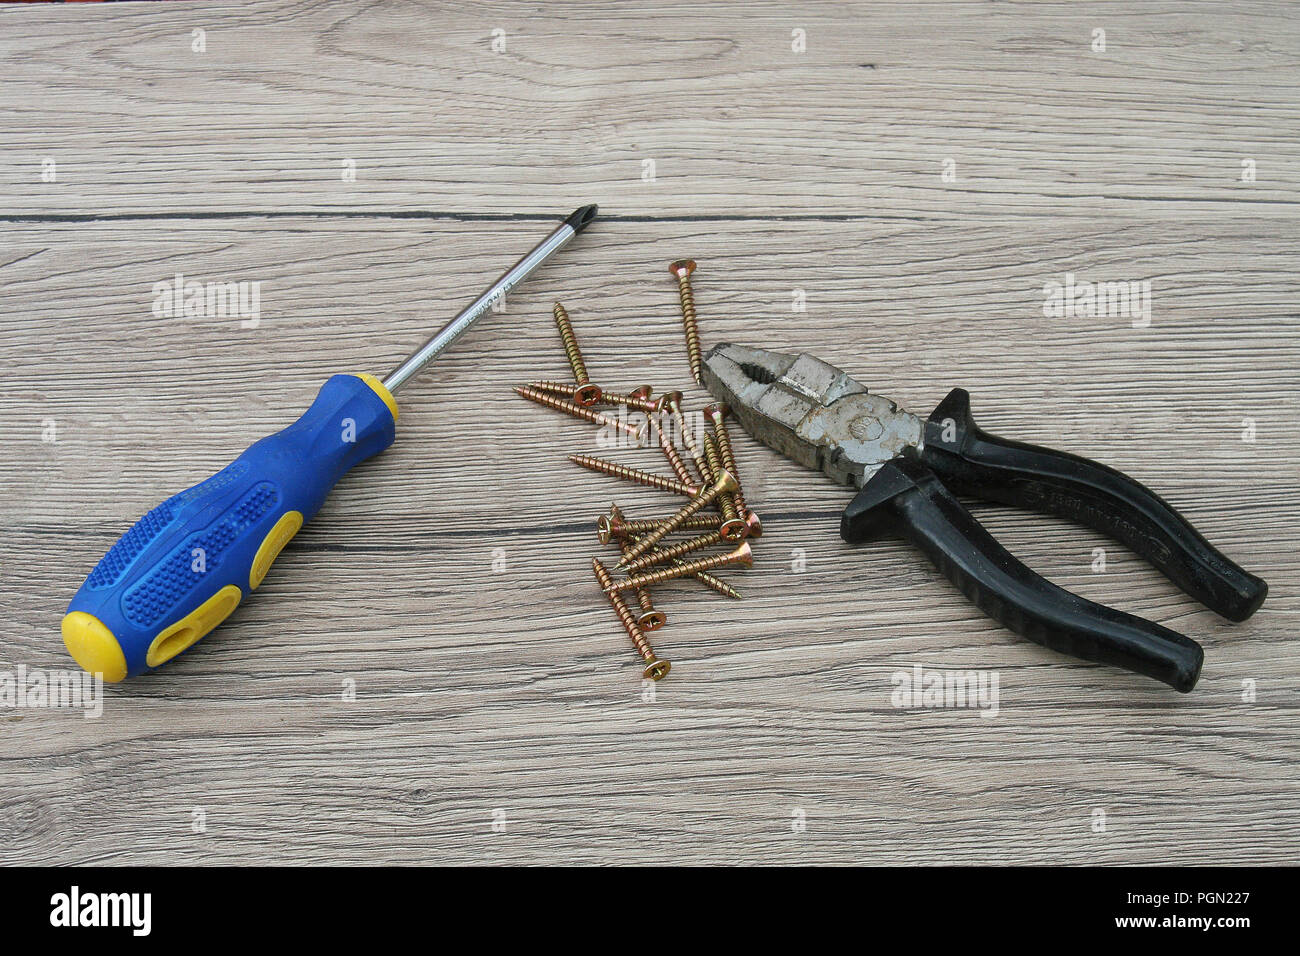 Screwdriver, Screws and Pliers Stock Photo